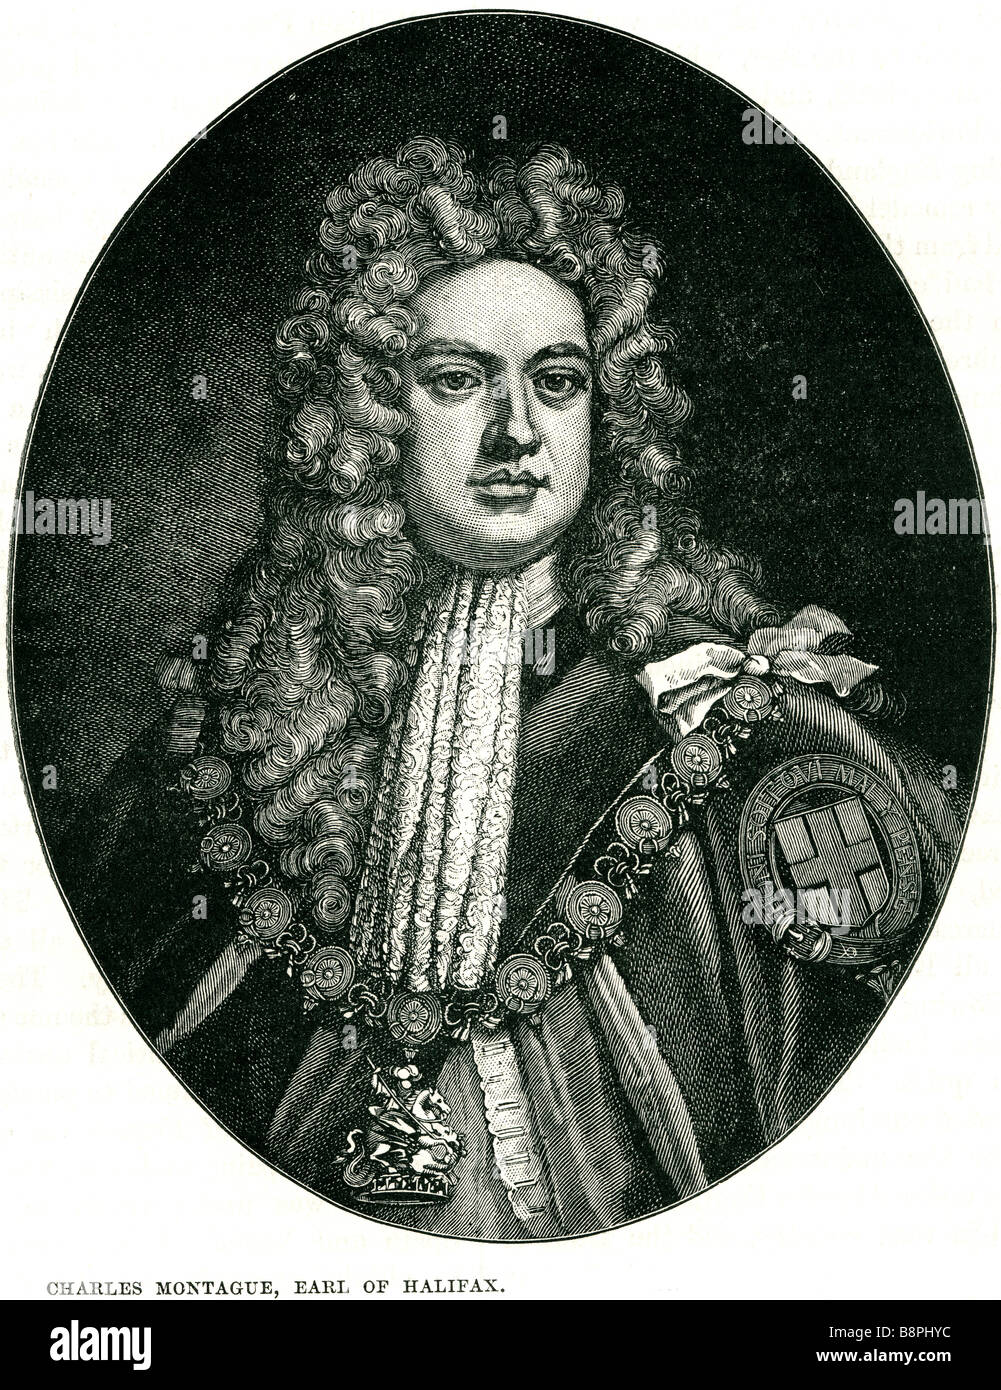 Charles Montagu, 1st Earl of Halifax, KG, PC, FRS (16 April 1661 – 19 May 1715) was an English poet and statesman. - Stock Image